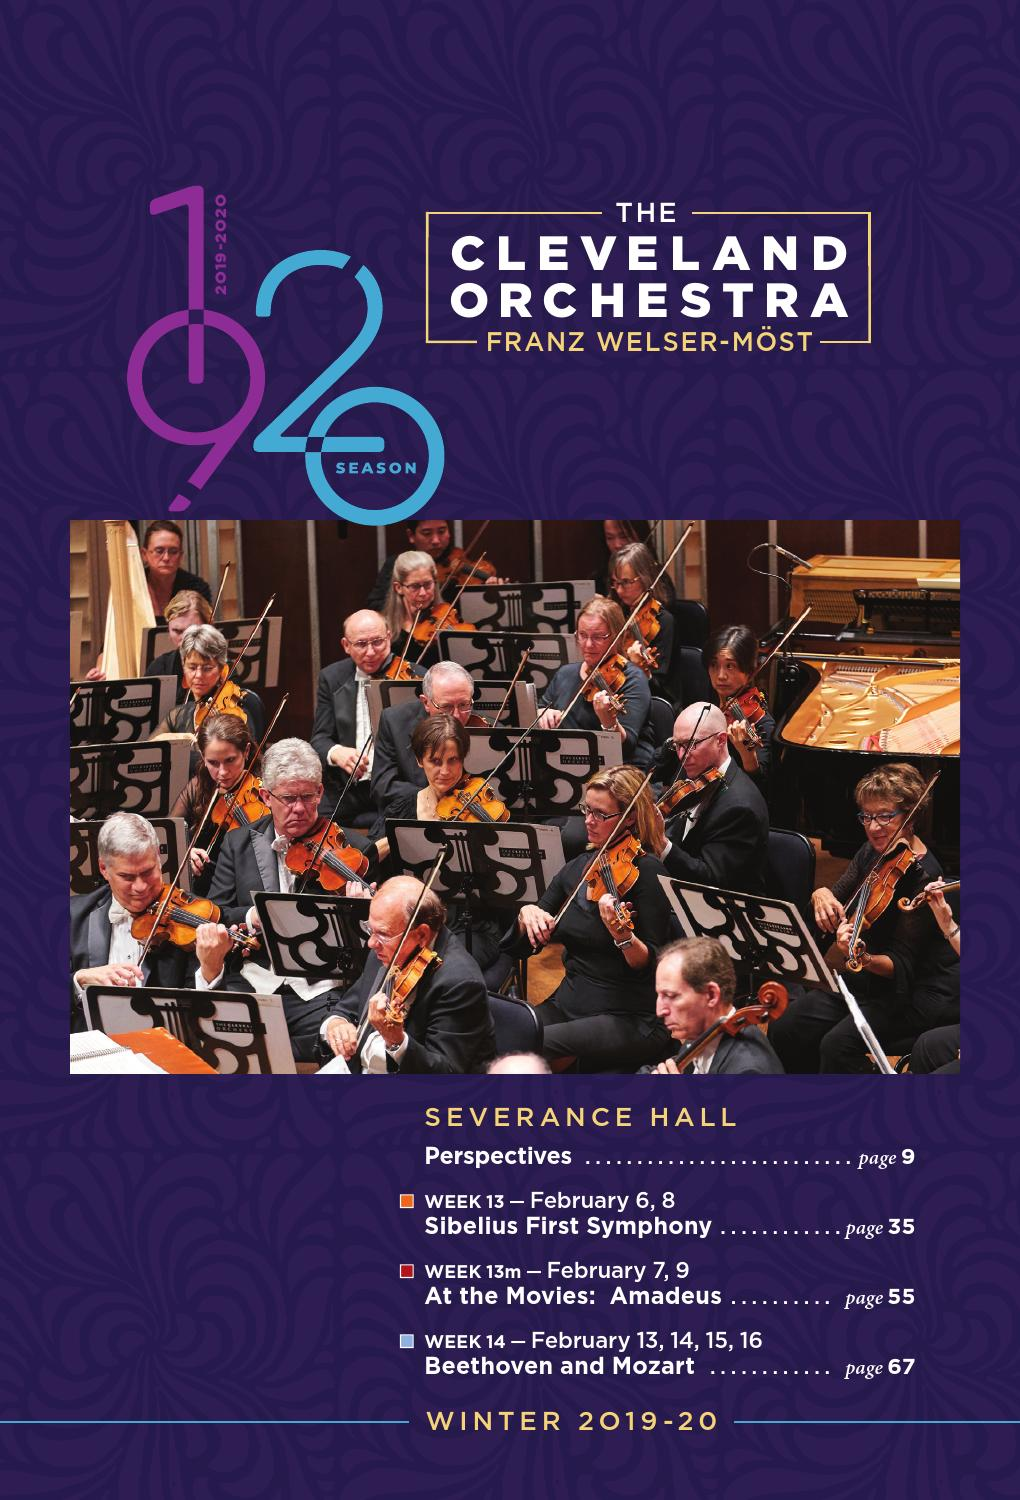 The Cleveland Orchestra February 6 9 13 16 Concerts By Live Publishing Issuu